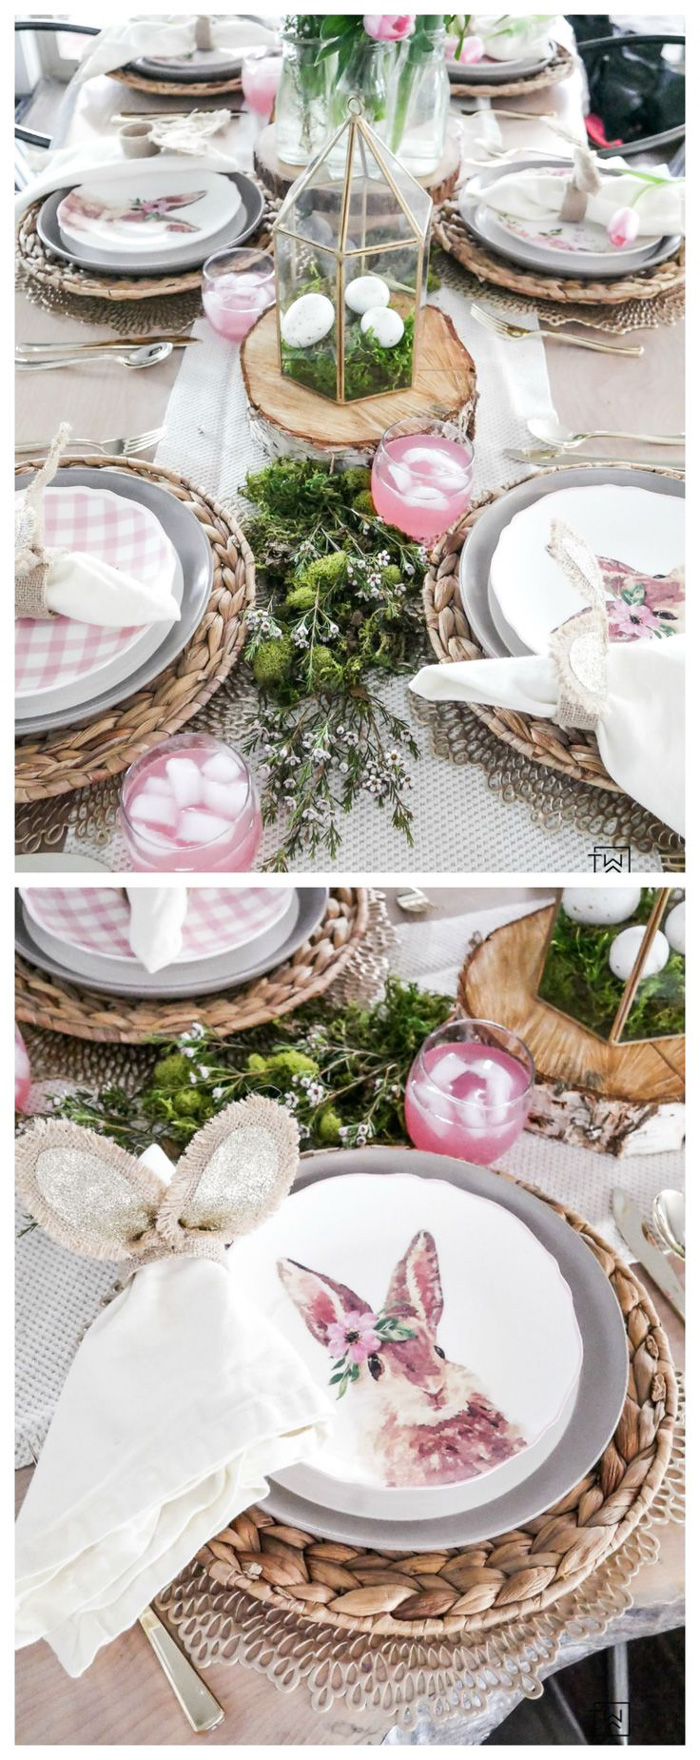 Easter-Table-Decoration-Ideas-Handmade-Centerpiece